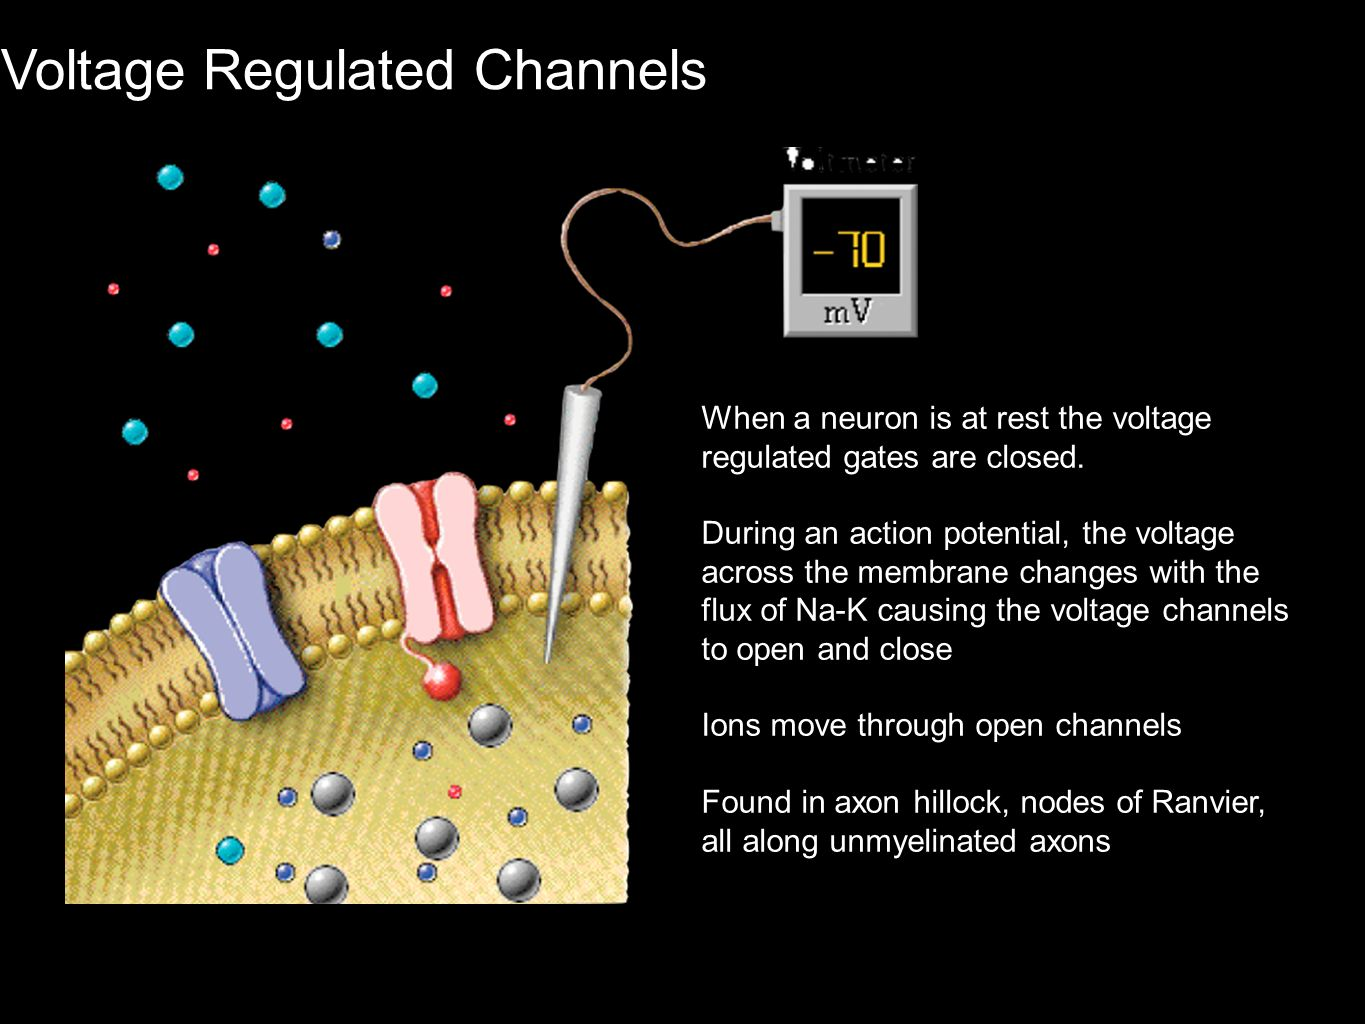 Voltage Regulated Channels